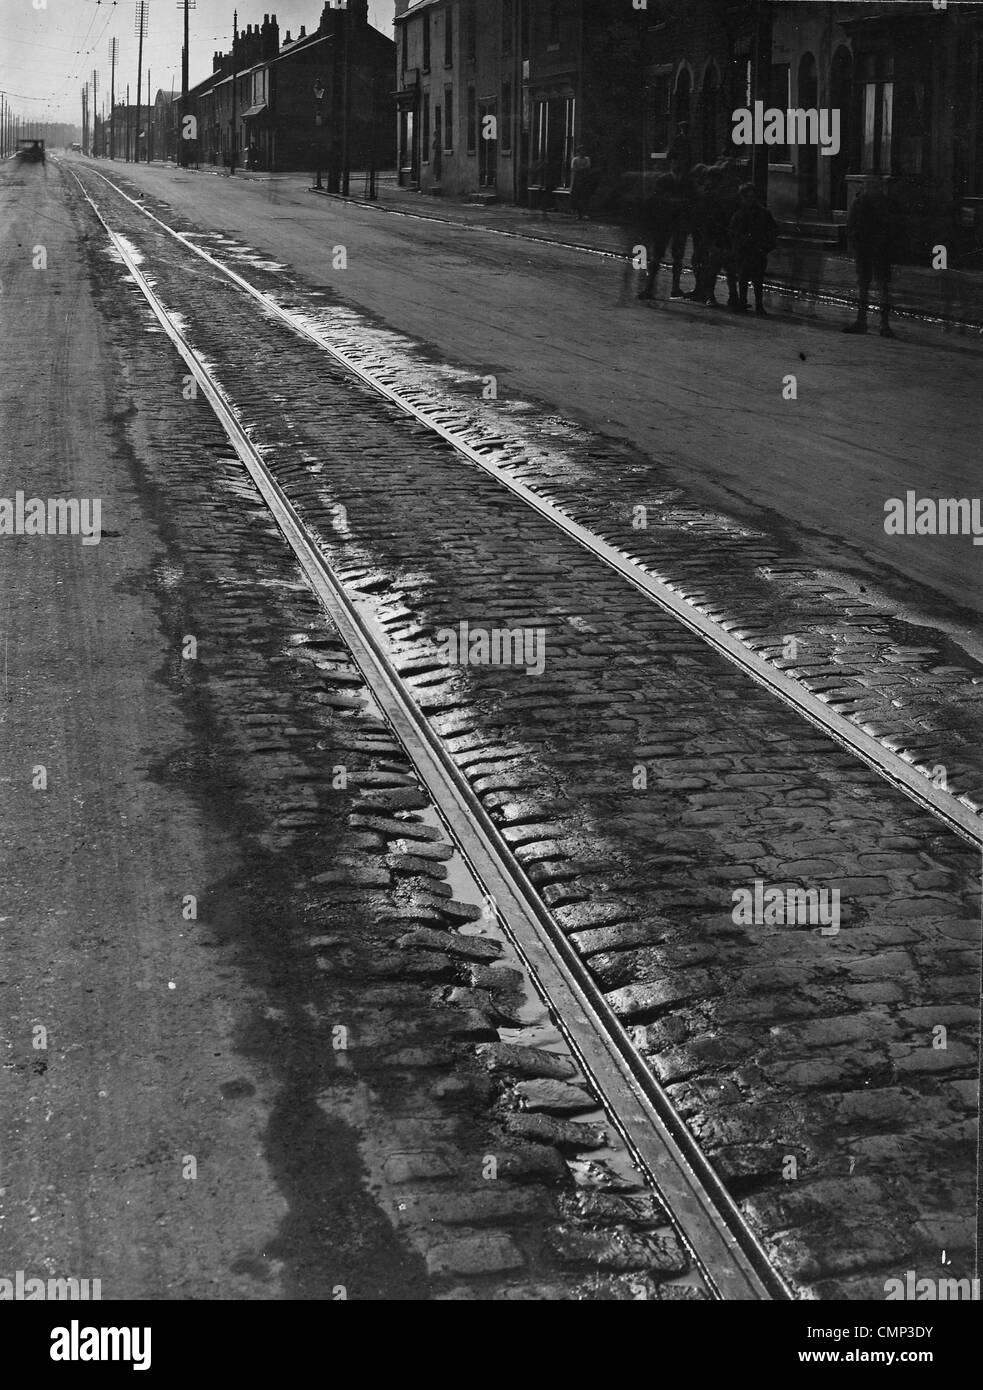 Tramlines, Willenhall Road, Wolverhampton, Early 20th cent. Tramlines on the partly cobbled Willenhall Road. The Stock Photo